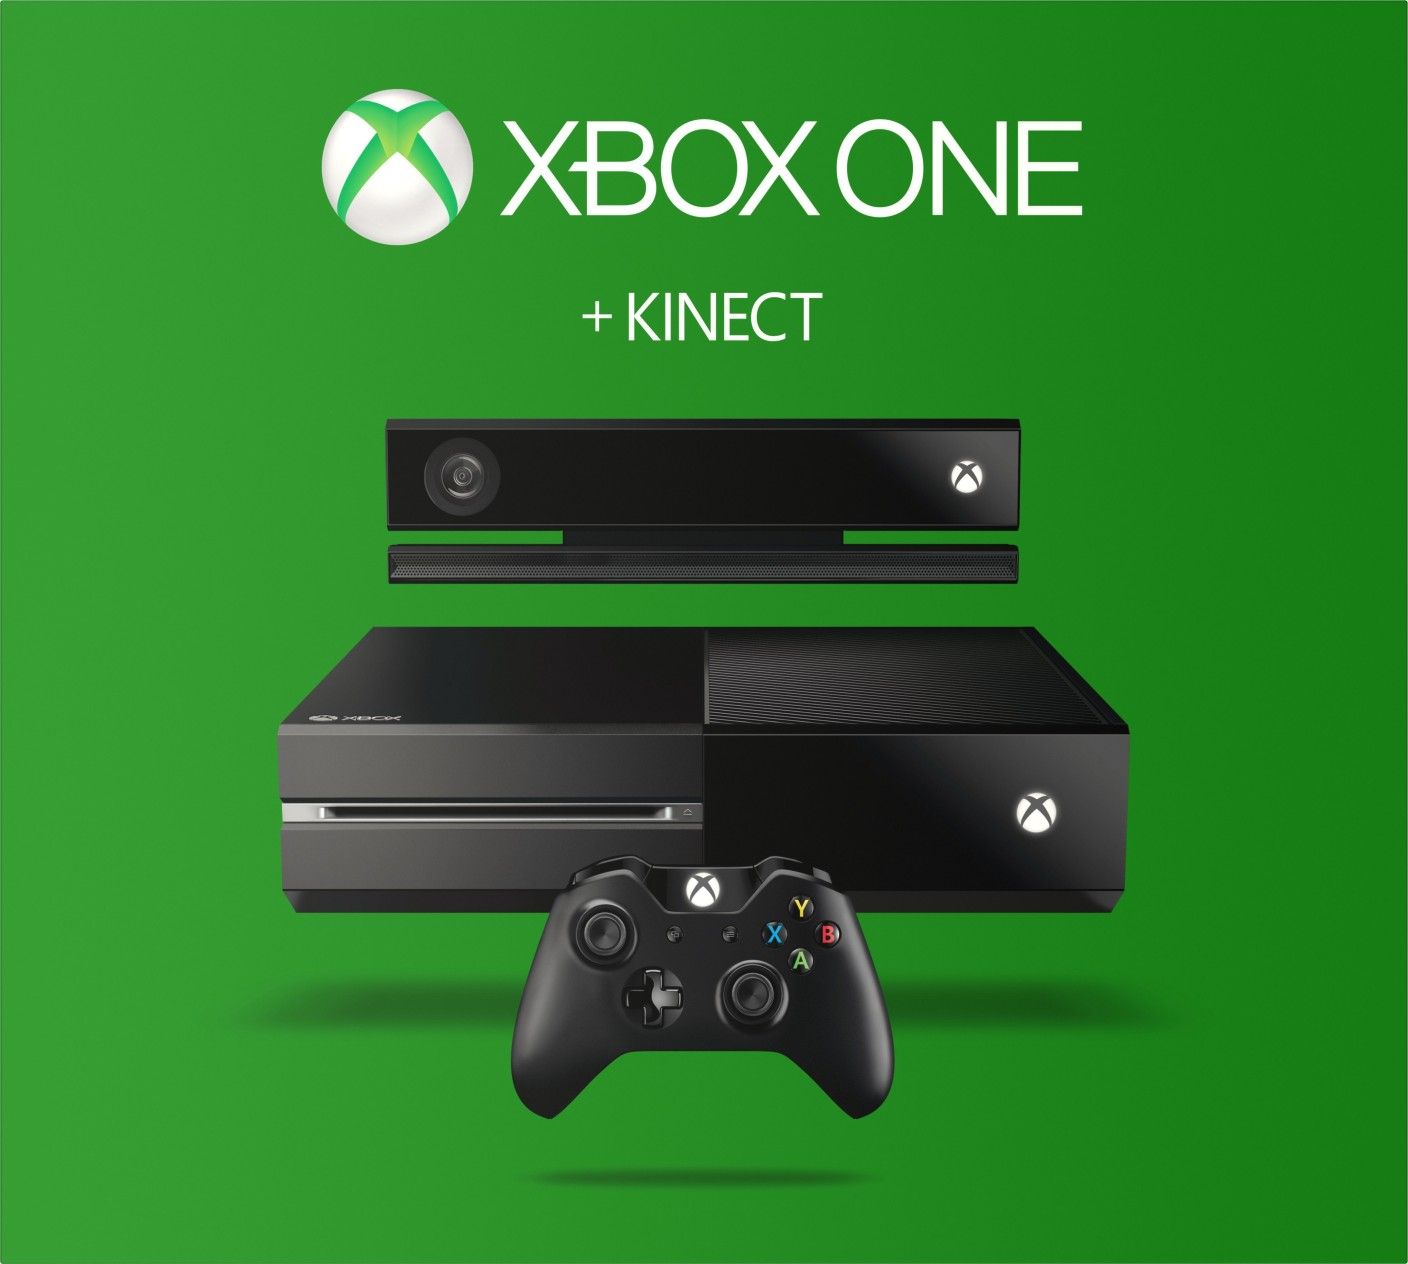 B D F B Bf D Db D Bf F A additionally Xbox One Game Kinect Sports Rivals Tw together with Xbox One With Kinect Microsoft Xbox One Controller Kinect Original Imaeqcvc Mjv Szf furthermore Rabbids Invasion Boxart in addition Xboxonereview Large. on xbox one kinect specifications